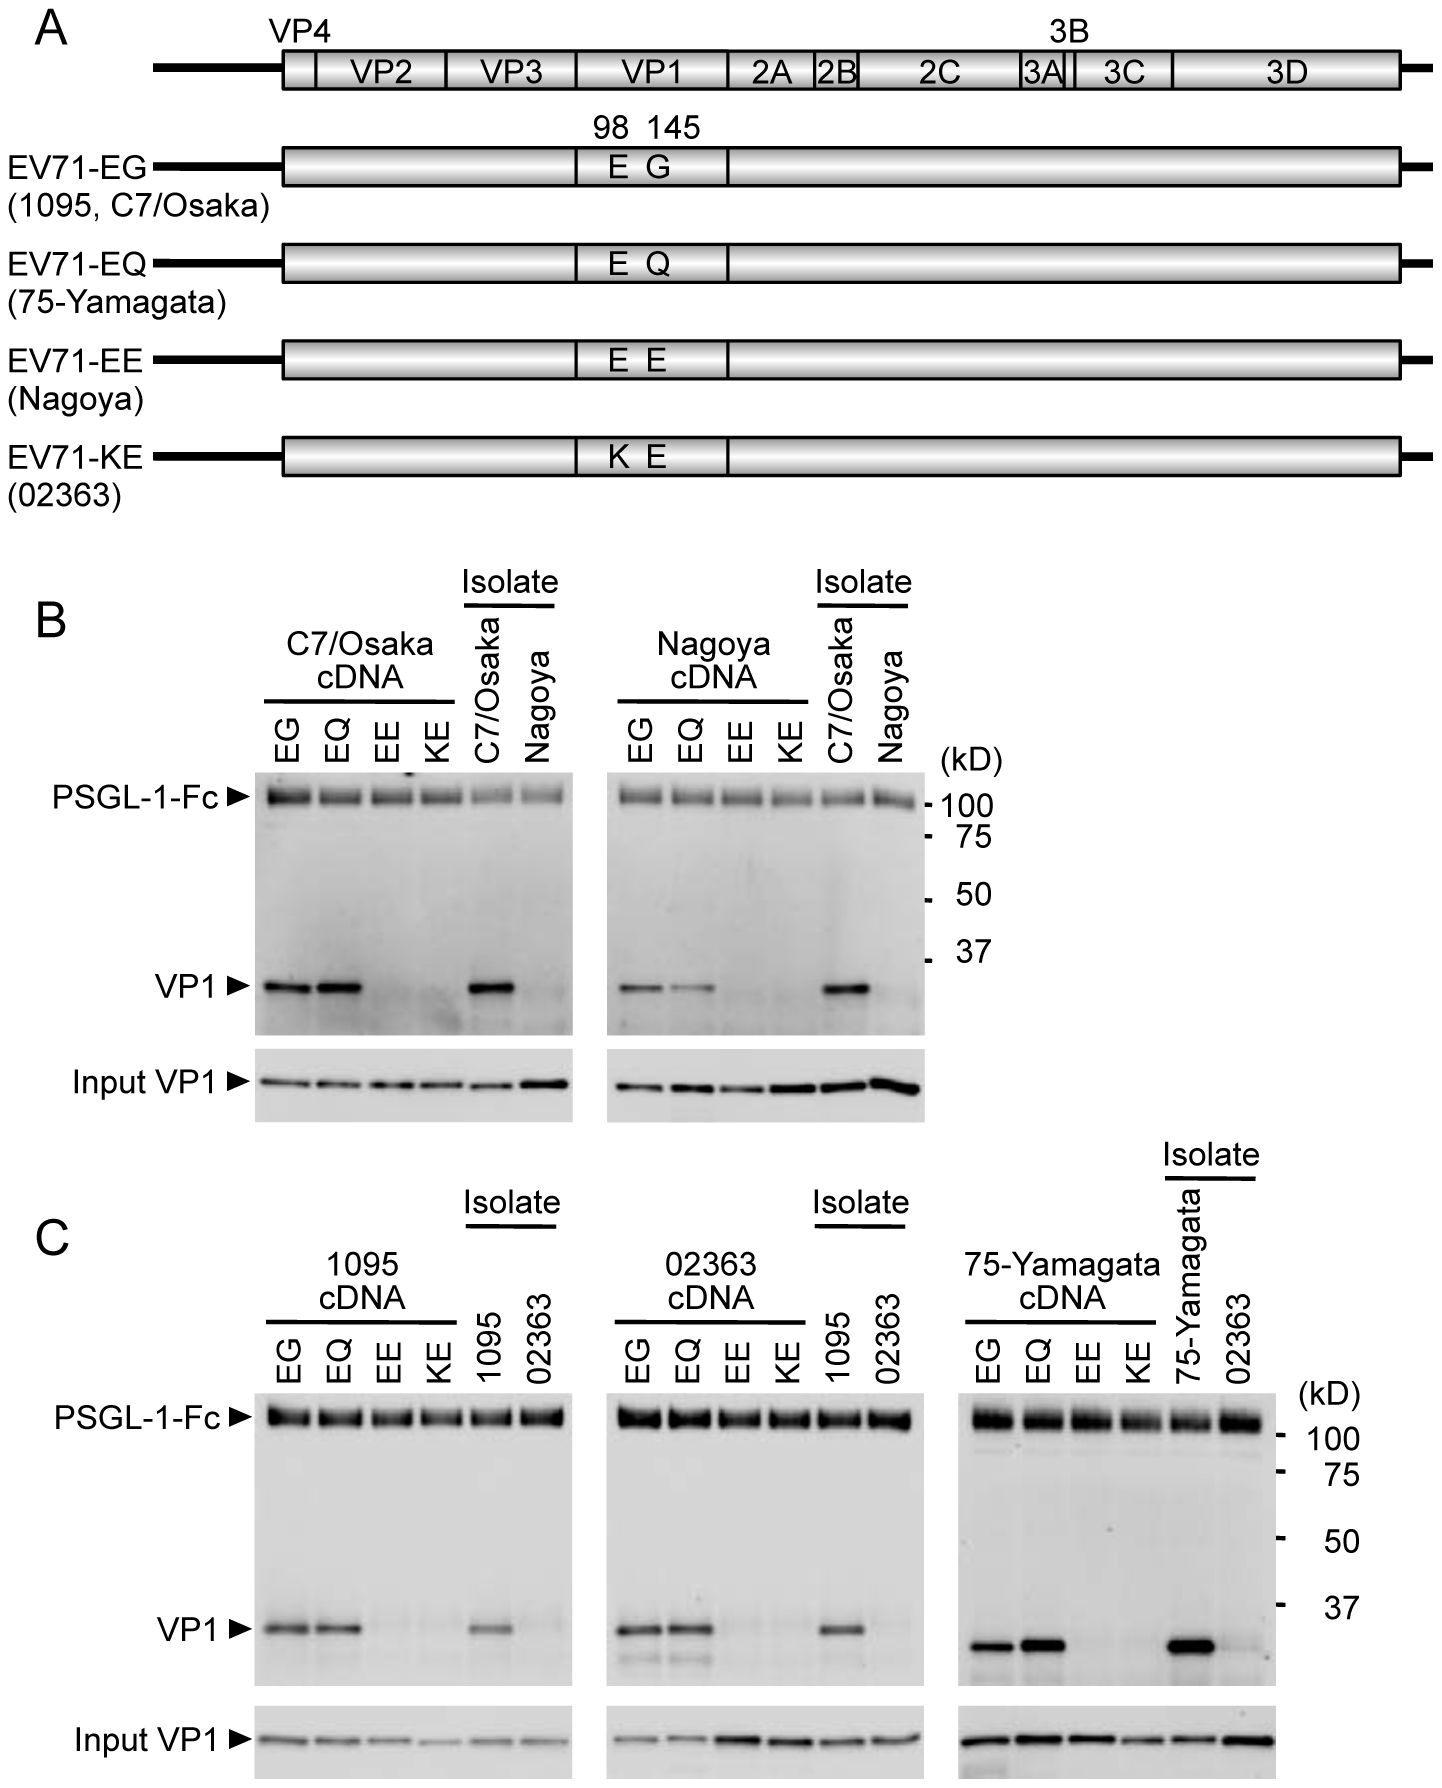 Co-precipitation analysis of EV71 mutants with soluble PSGL-1-Fc.